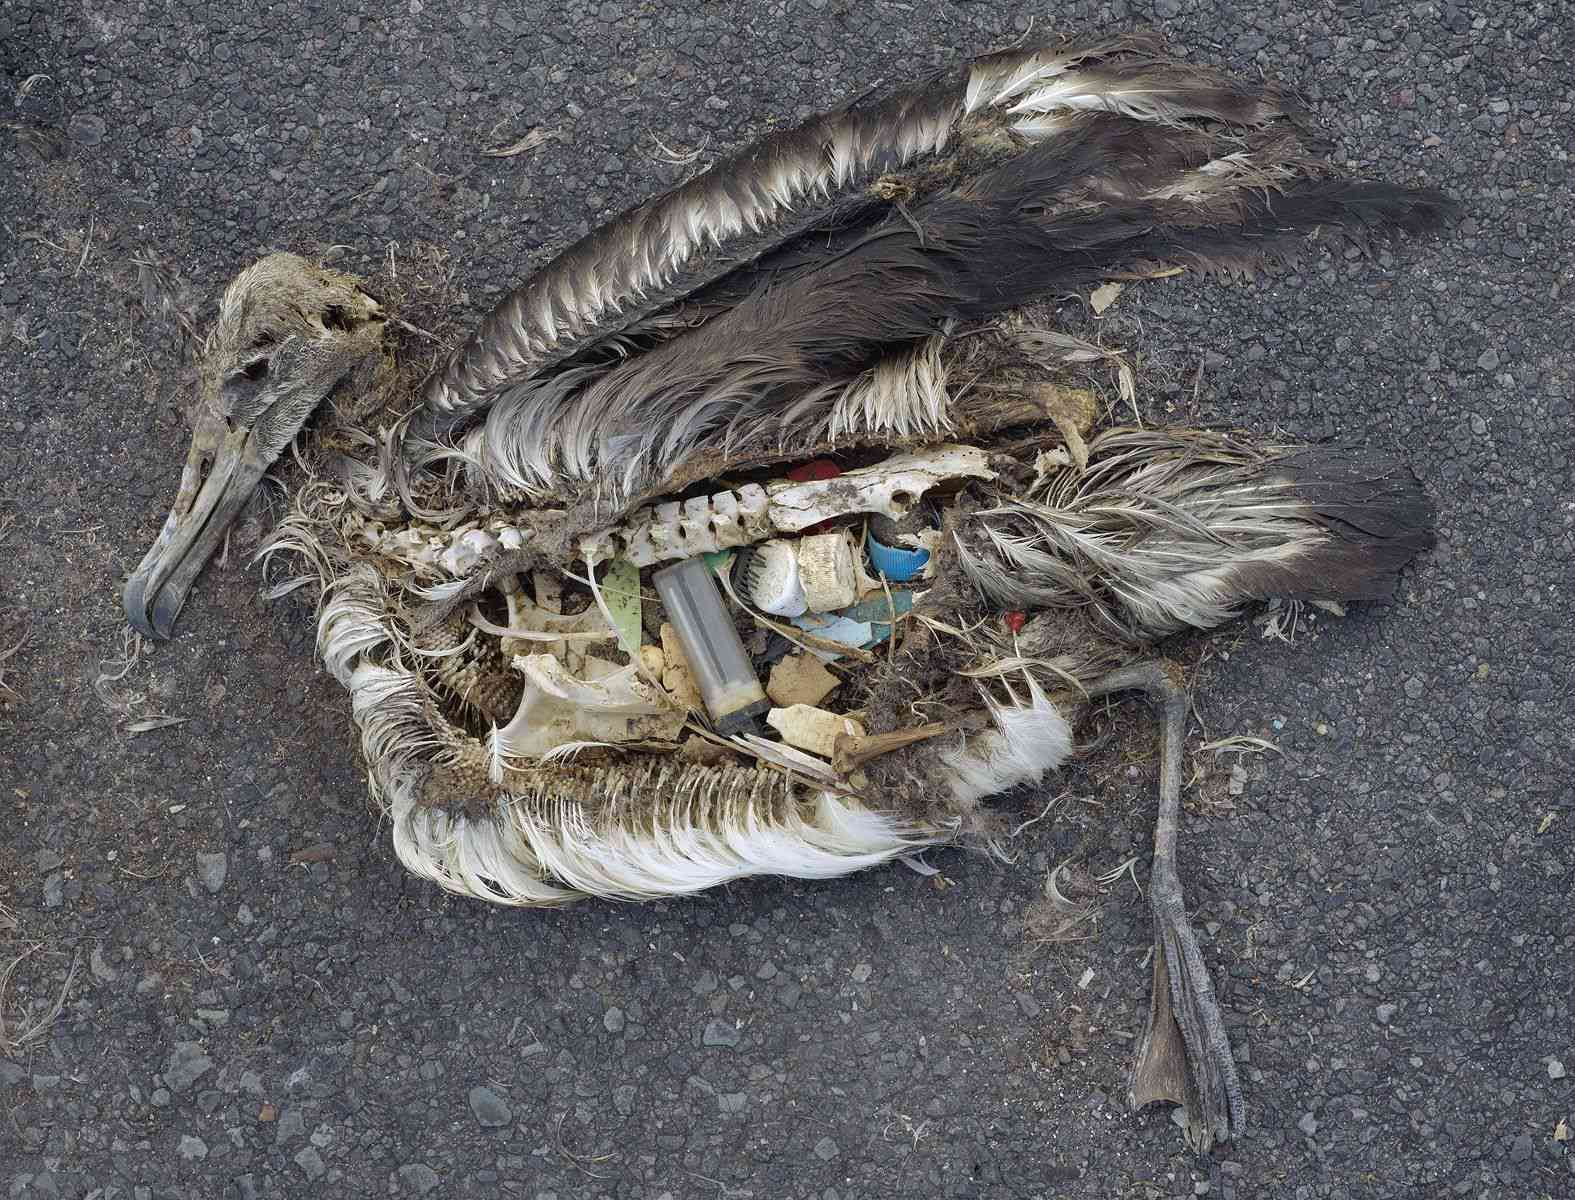 albatross chick stomach contents